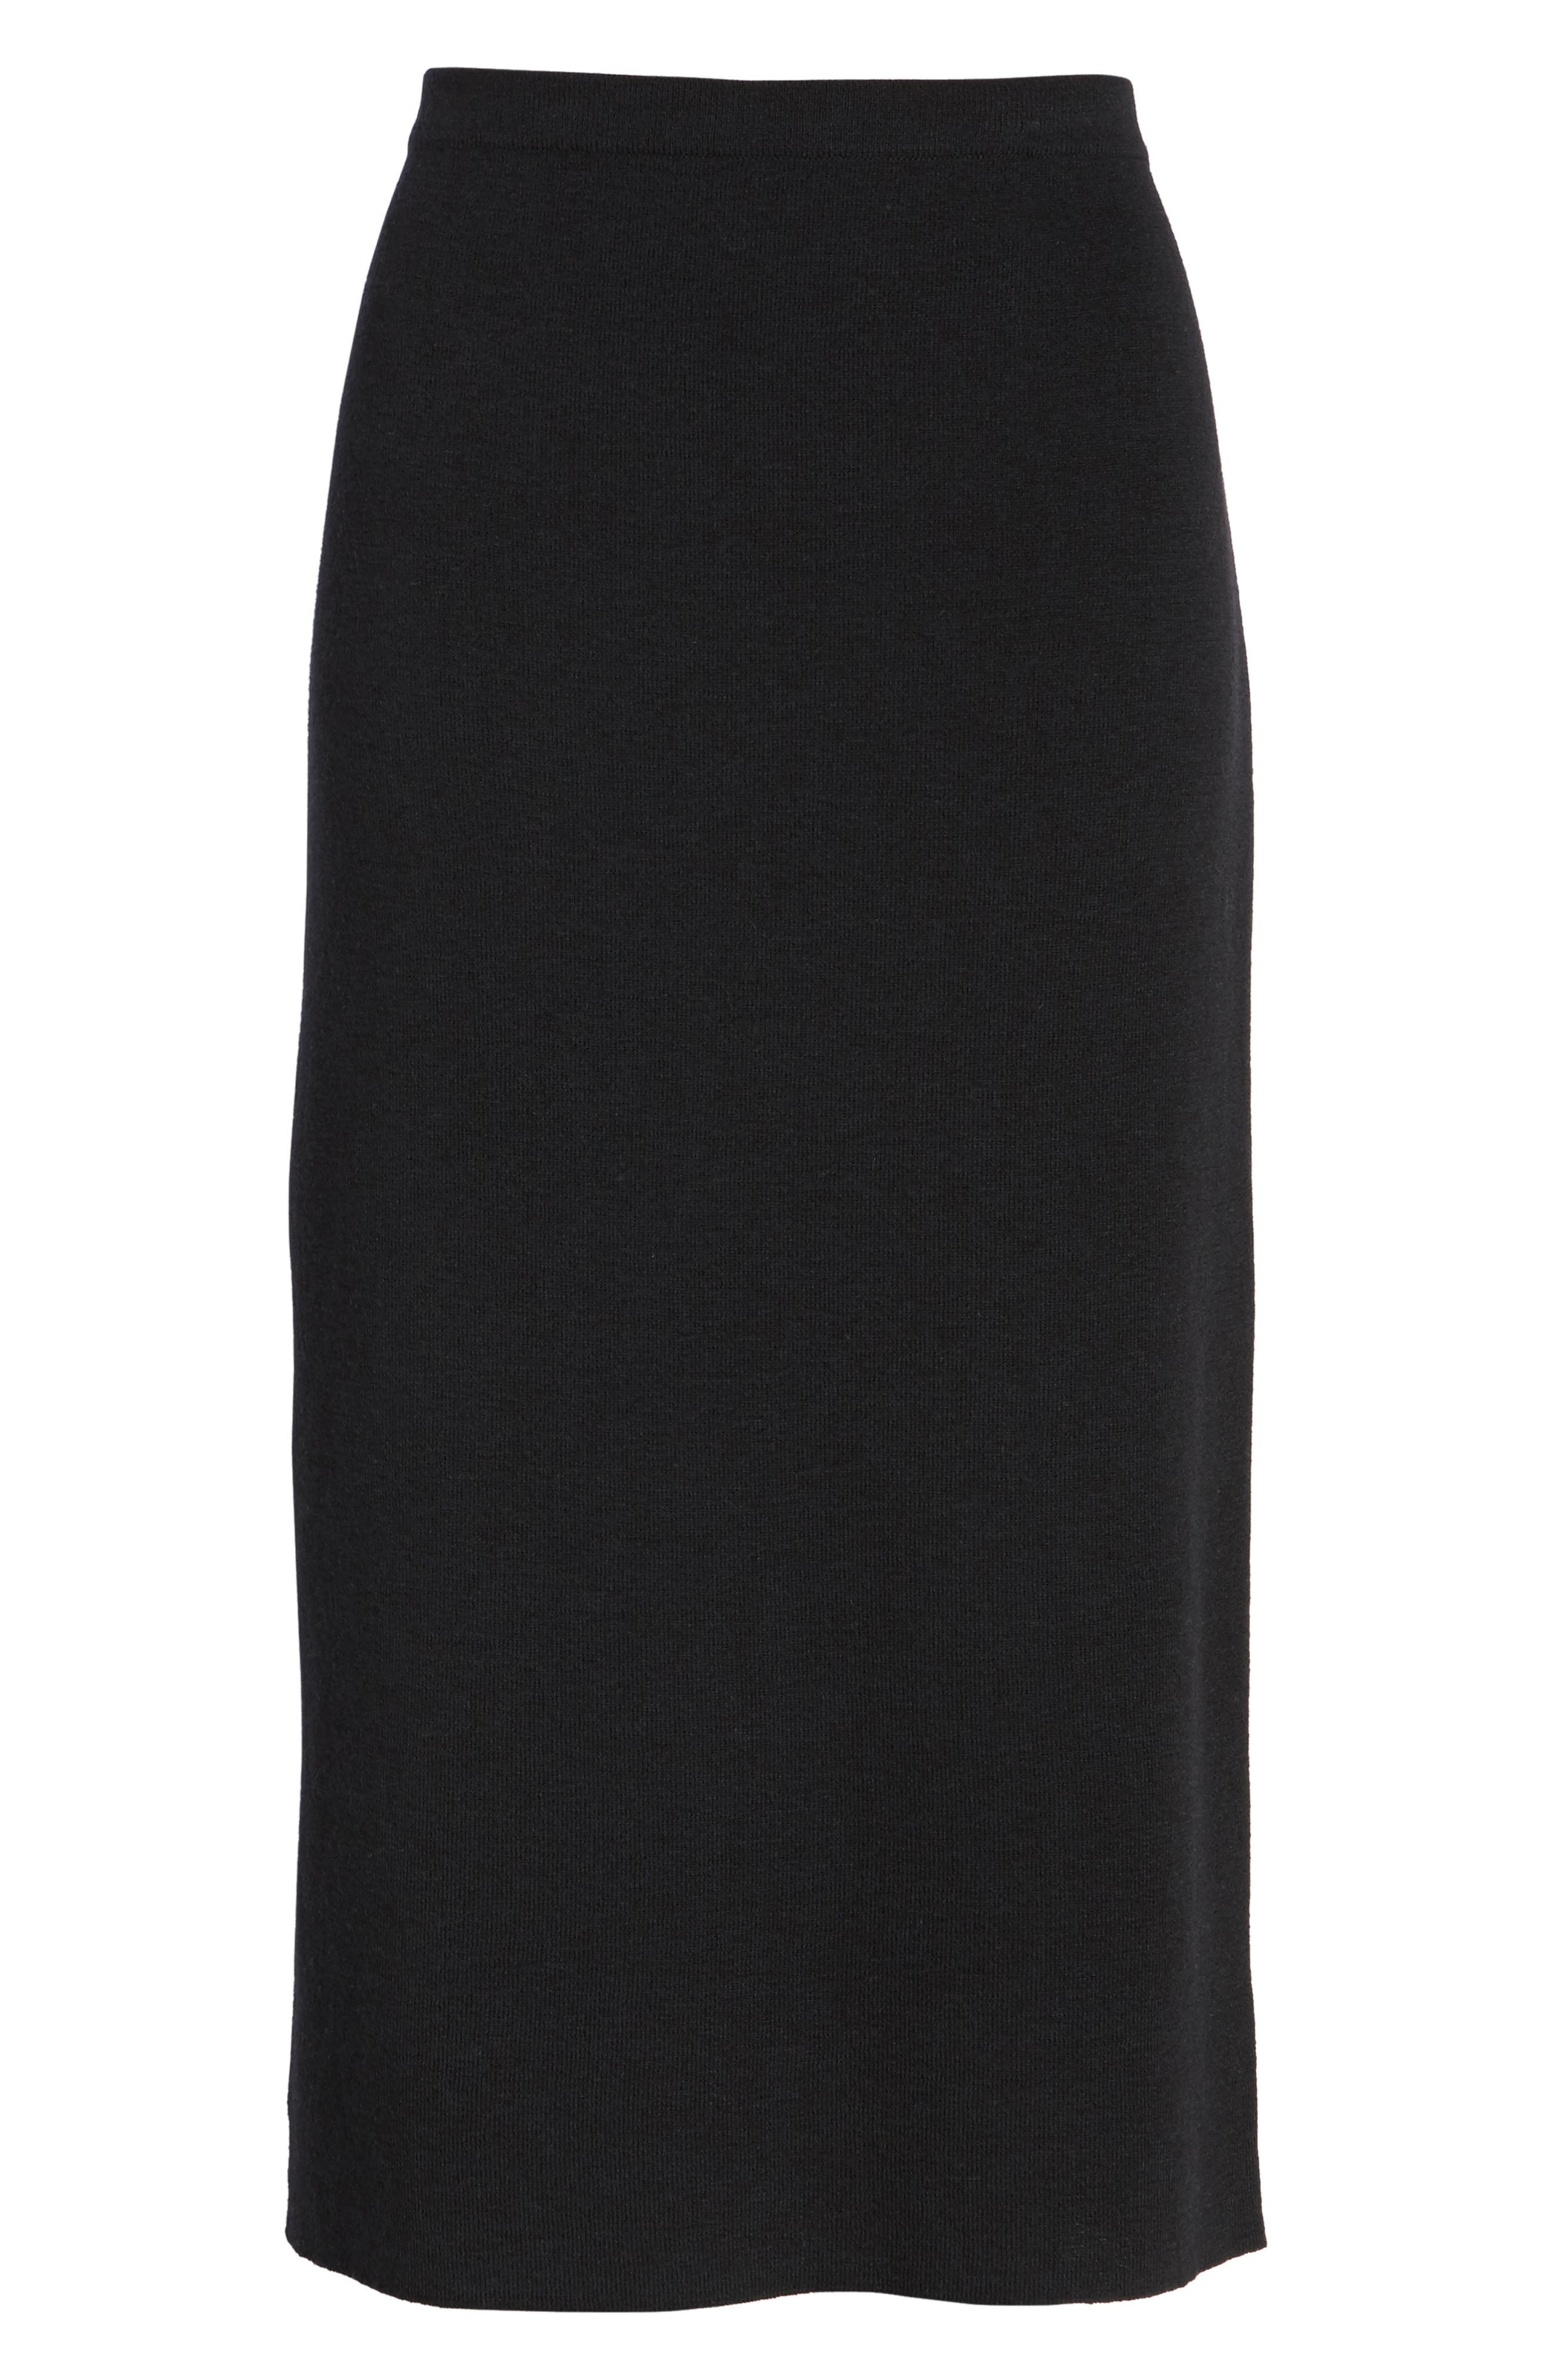 Main Image - Eileen Fisher Wool Knit Pencil Skirt